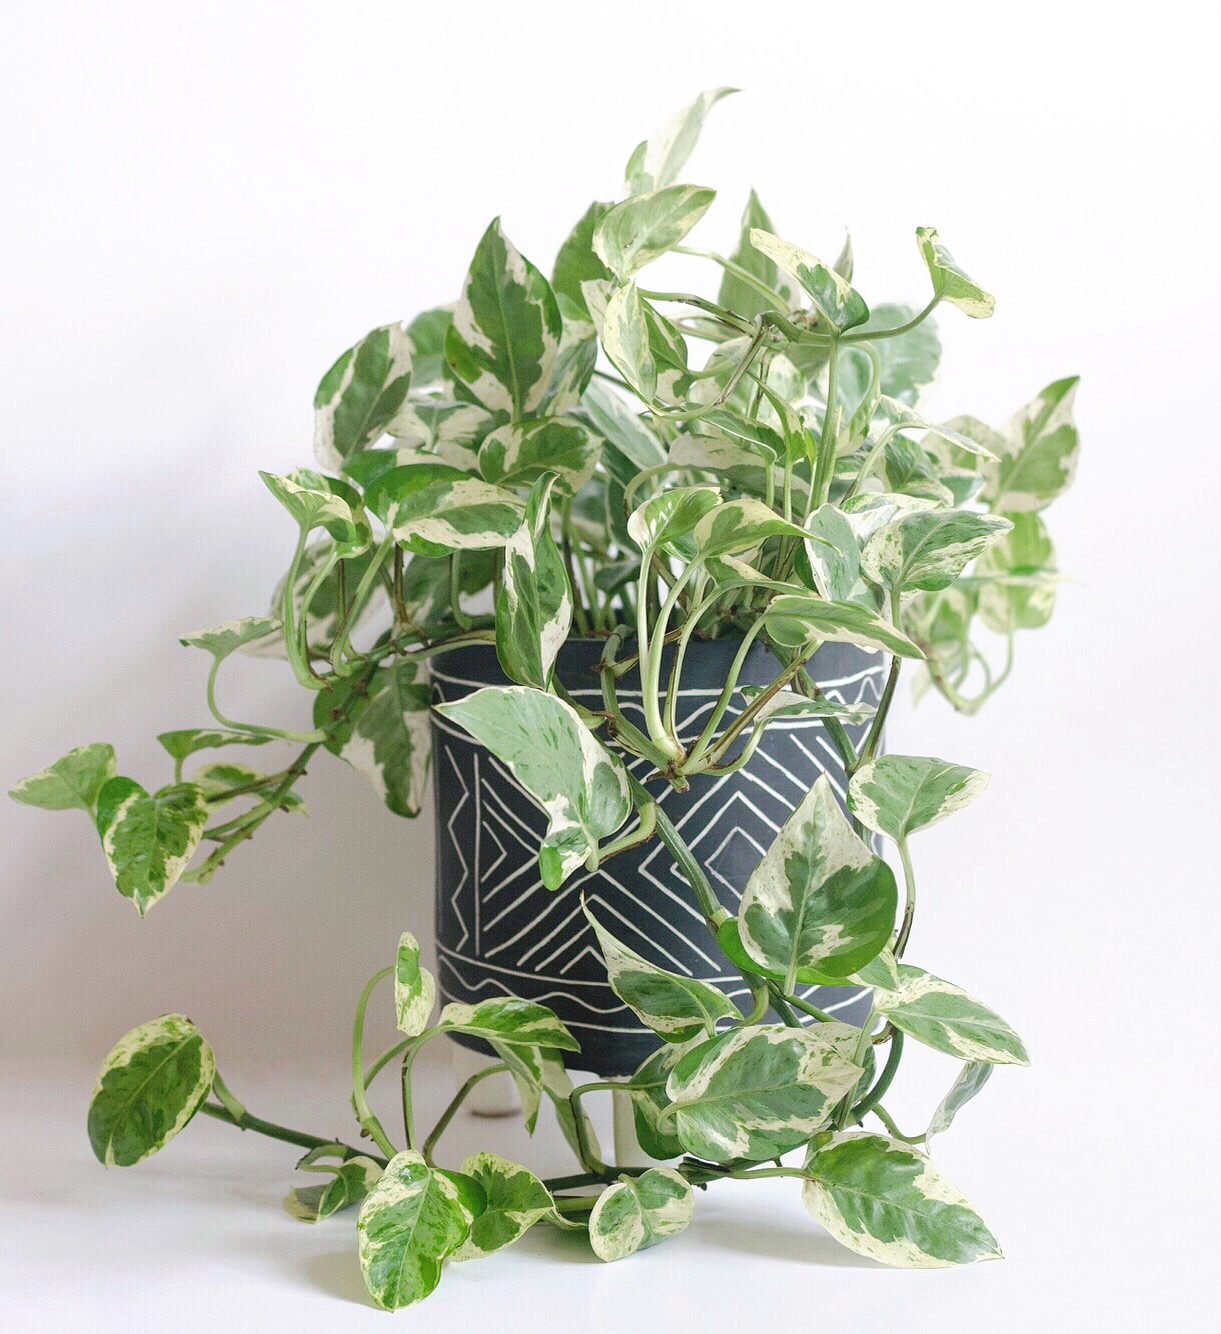 Epipremnum aureum  'Pearls and Jade' is a popular choice and fast grower.